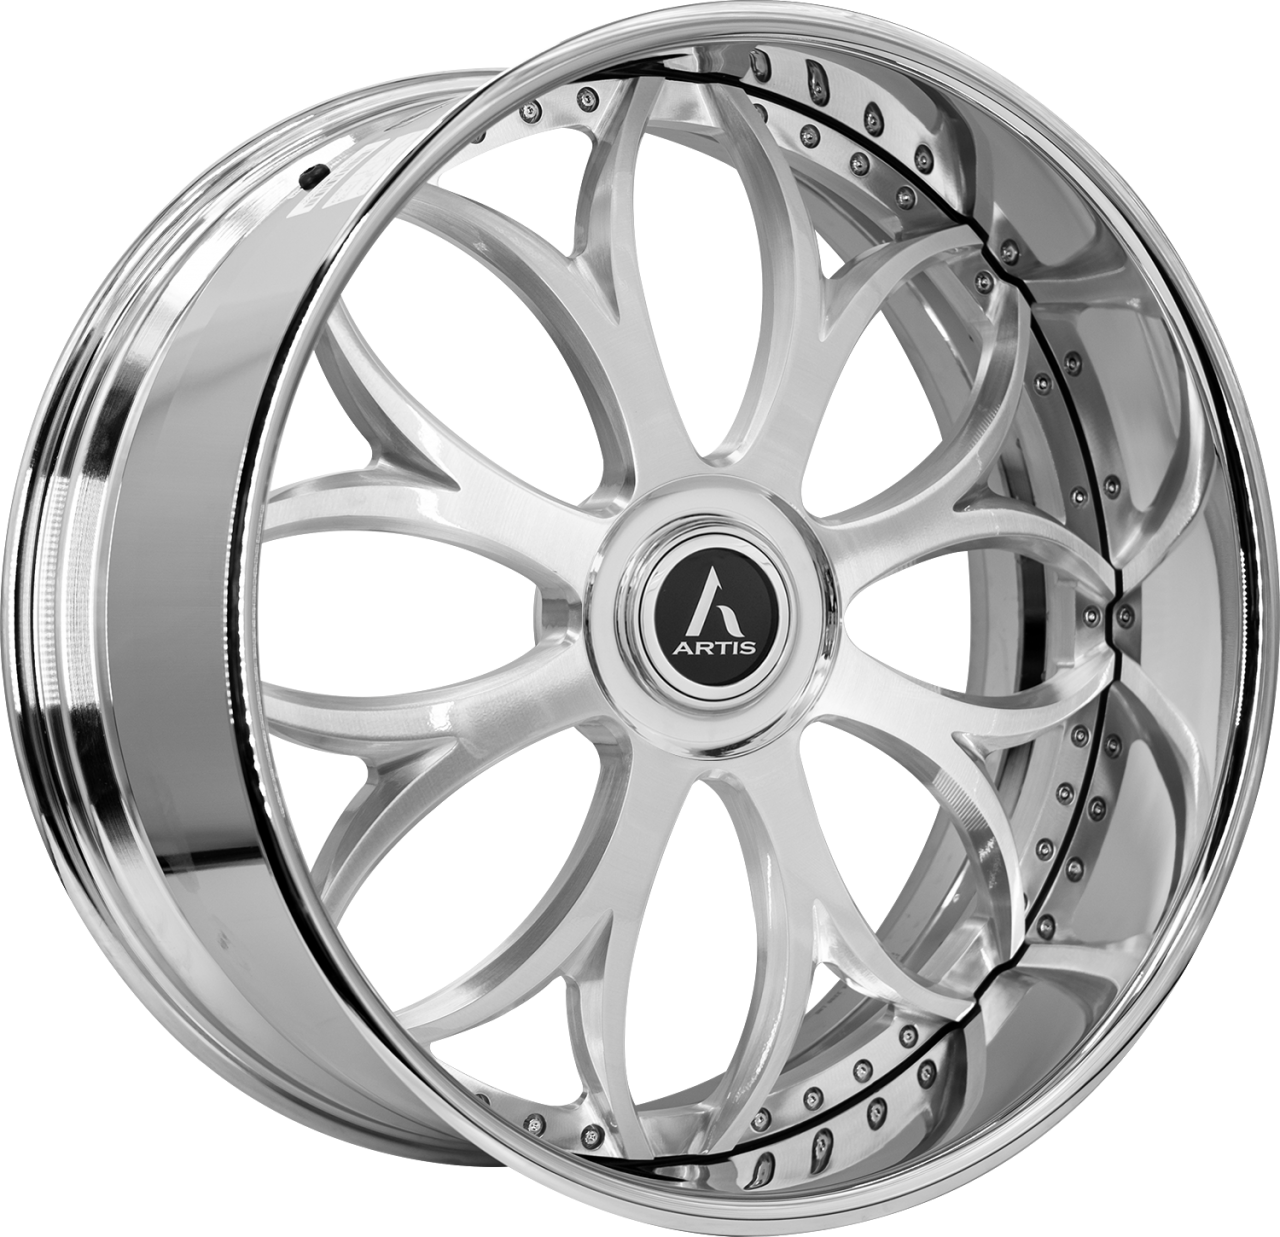 Artis Forged Radon wheel with Brushed with XL Floater Cap finish